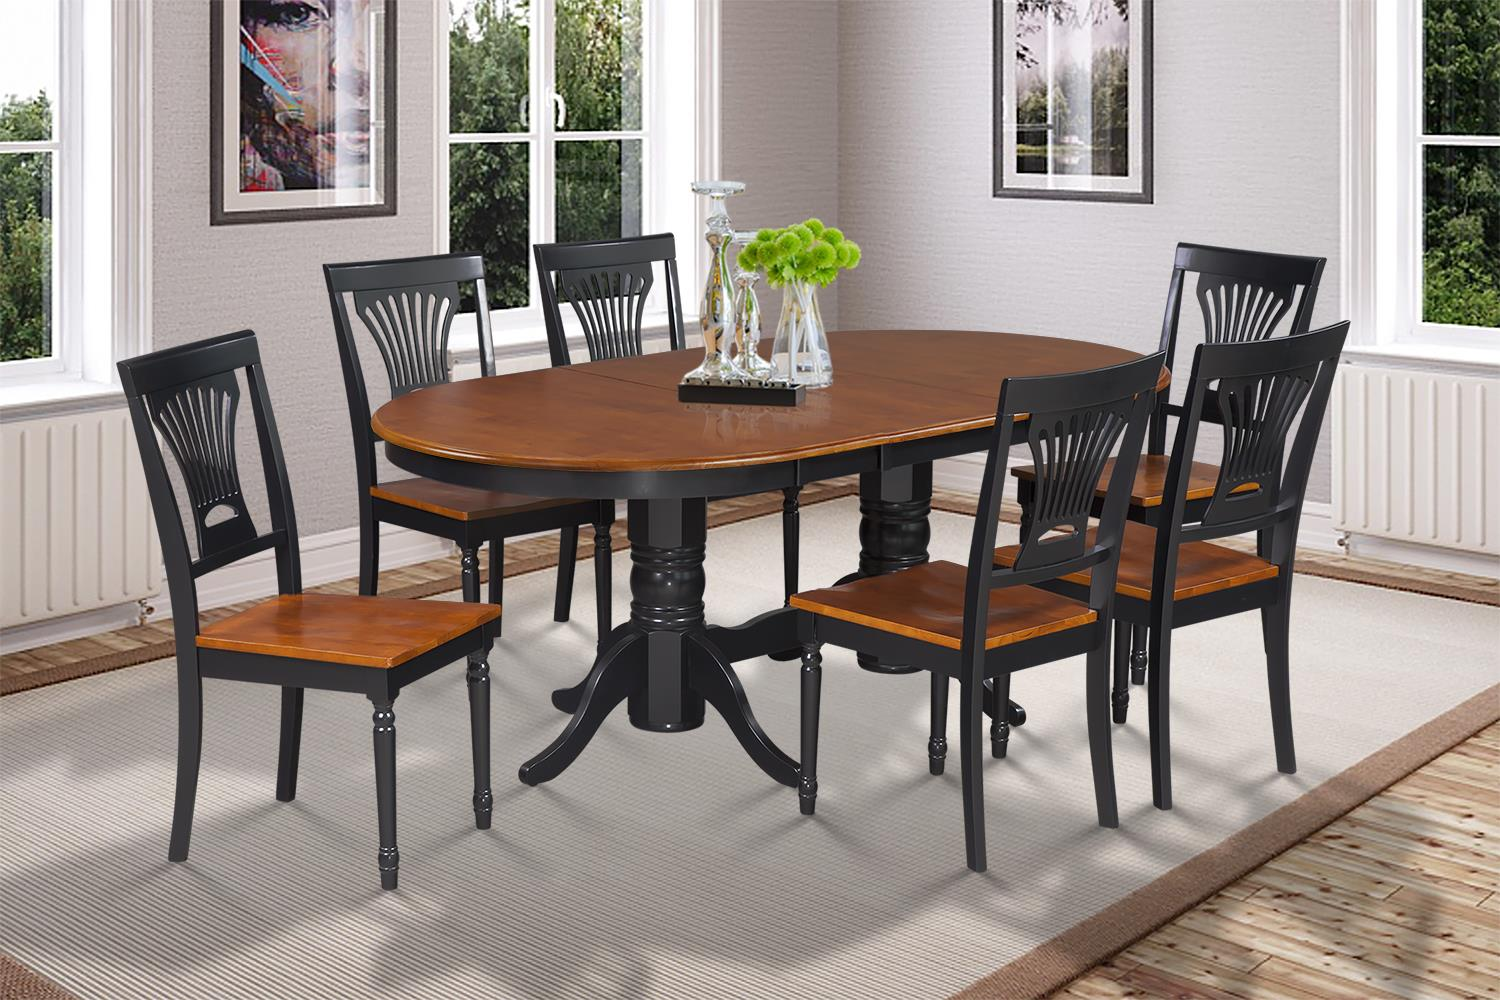 7 Piece Dining Room Set Table With A Butterfly Leaf And 6 Dining Chairs  Finish